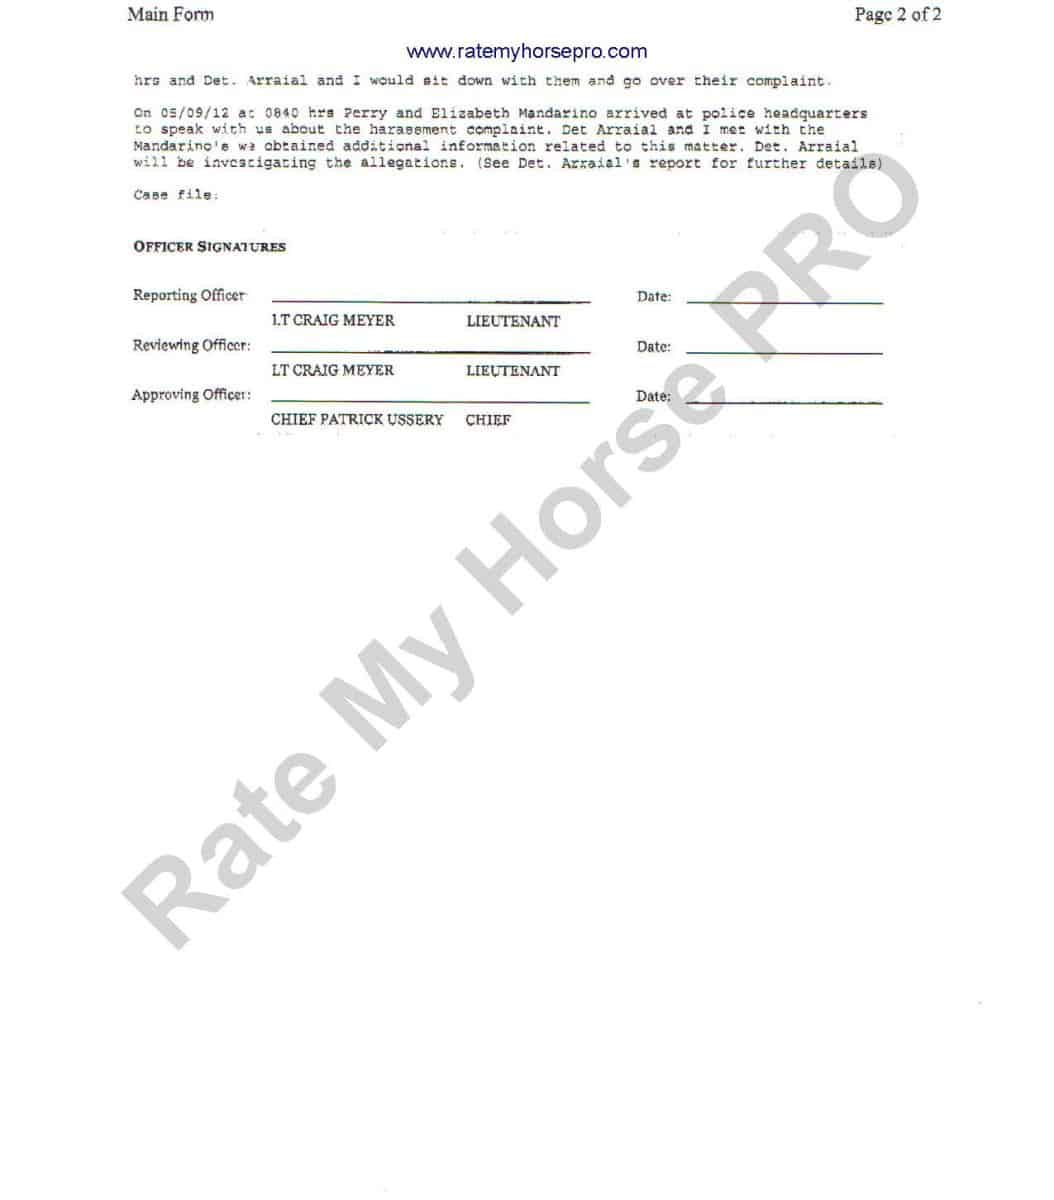 Amber Hill Farm LLC Ponies and Horses for Sale or Lease, Cleveland, Georgia - POLICE REPORT